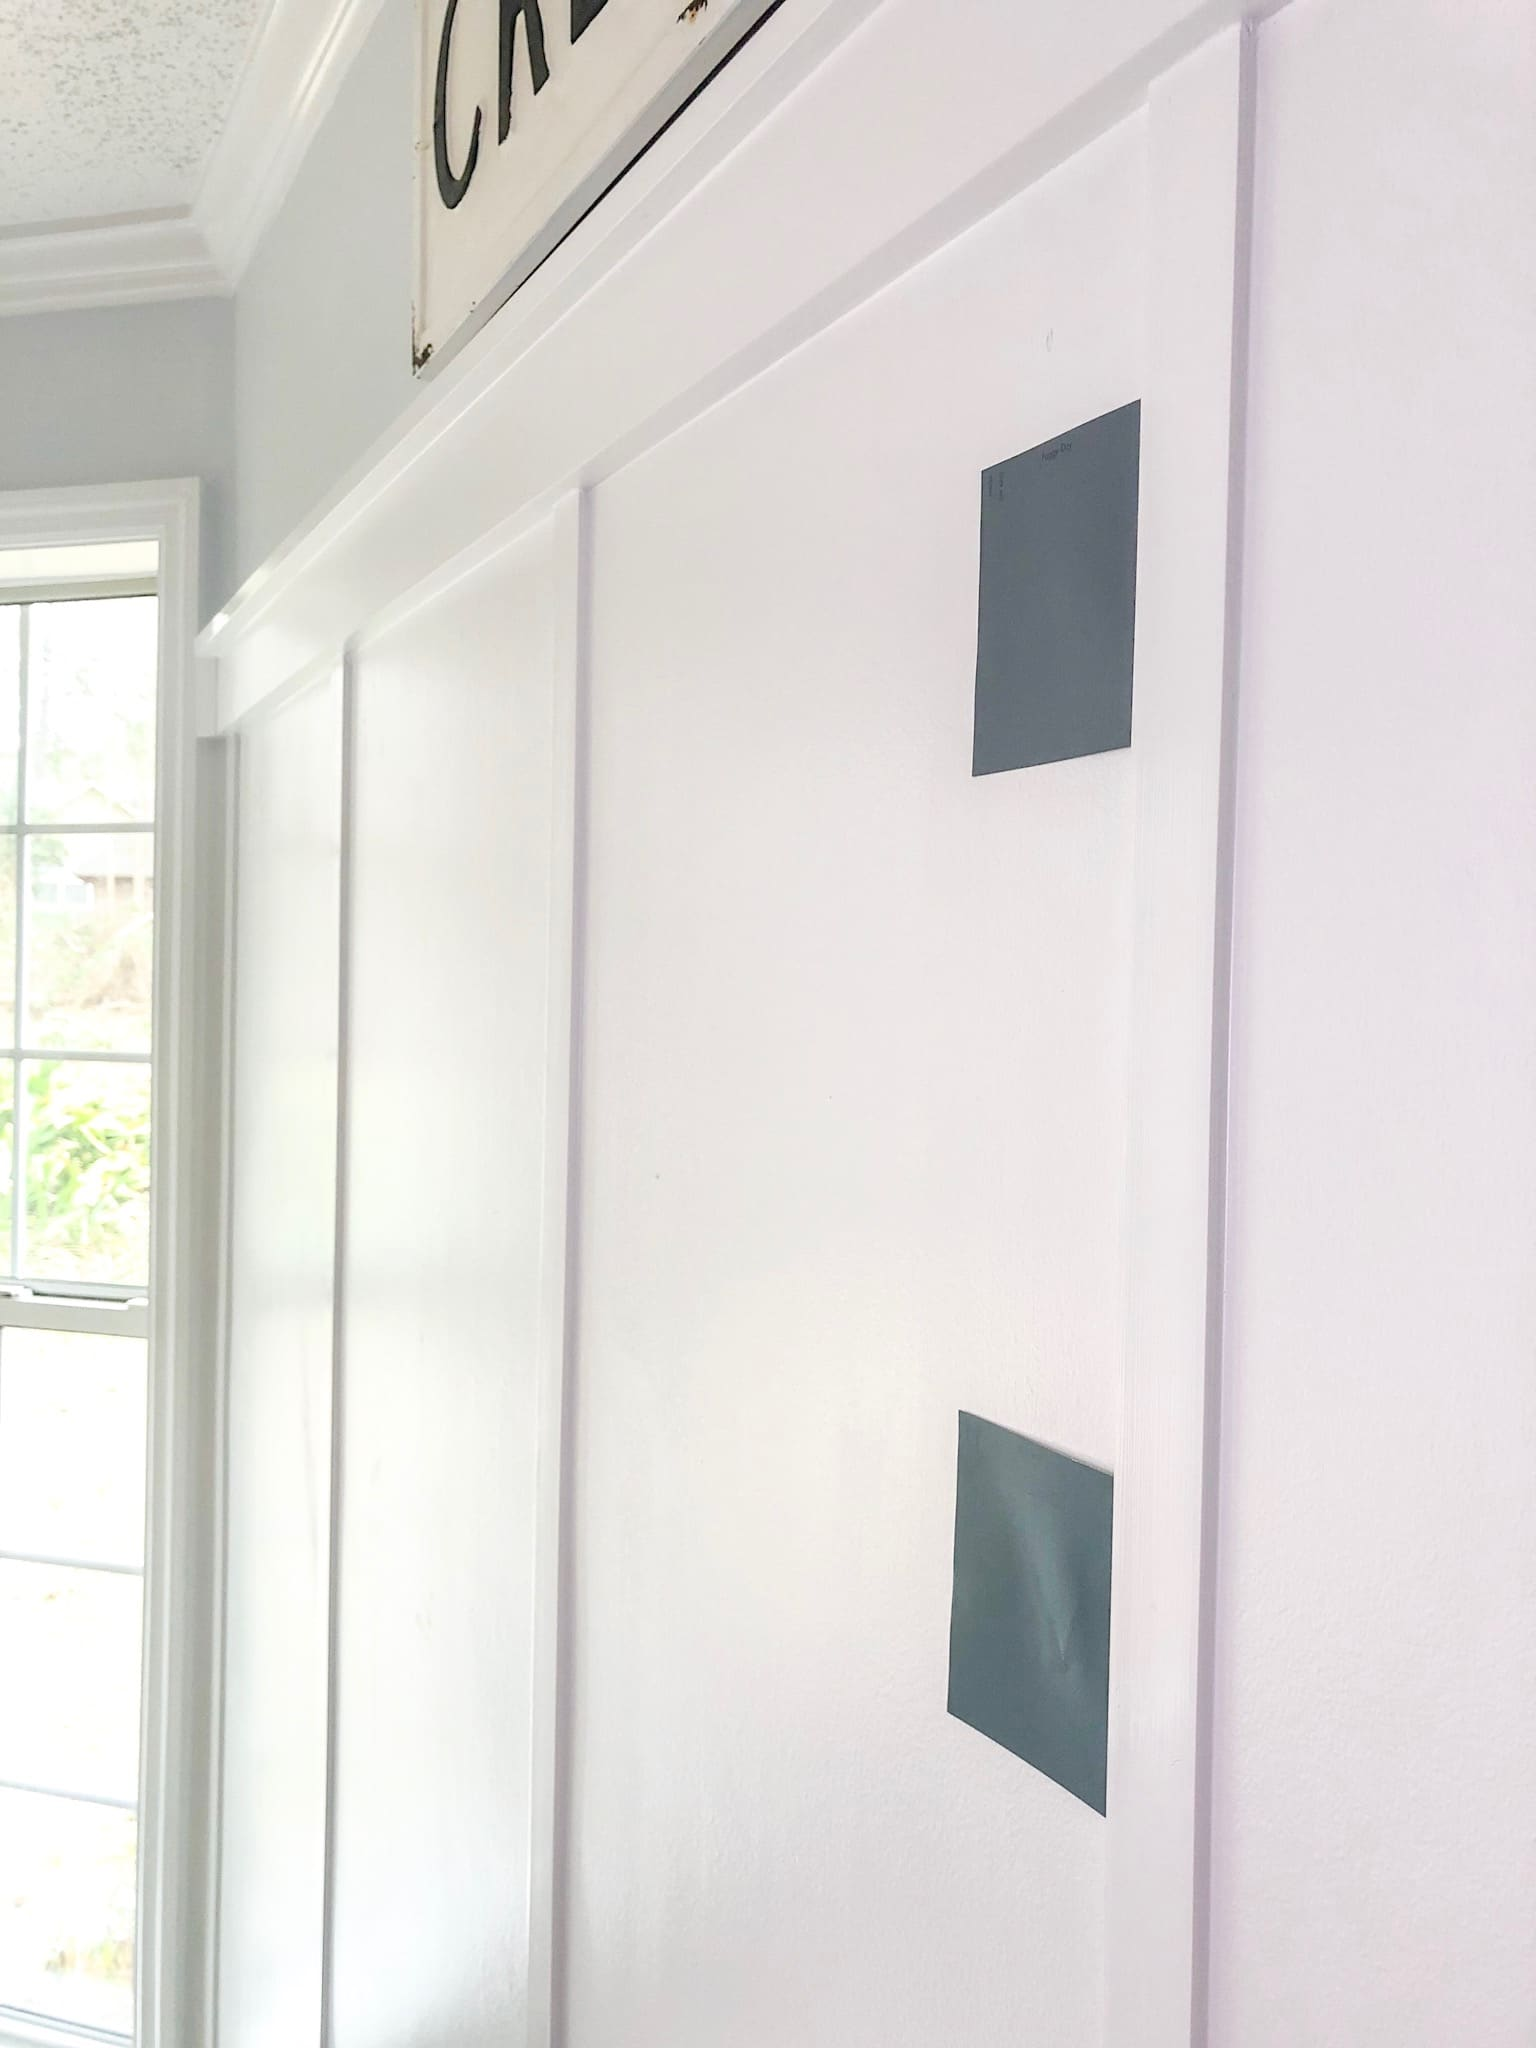 samples of fixer upper paint colors mounted to a board and batten wall